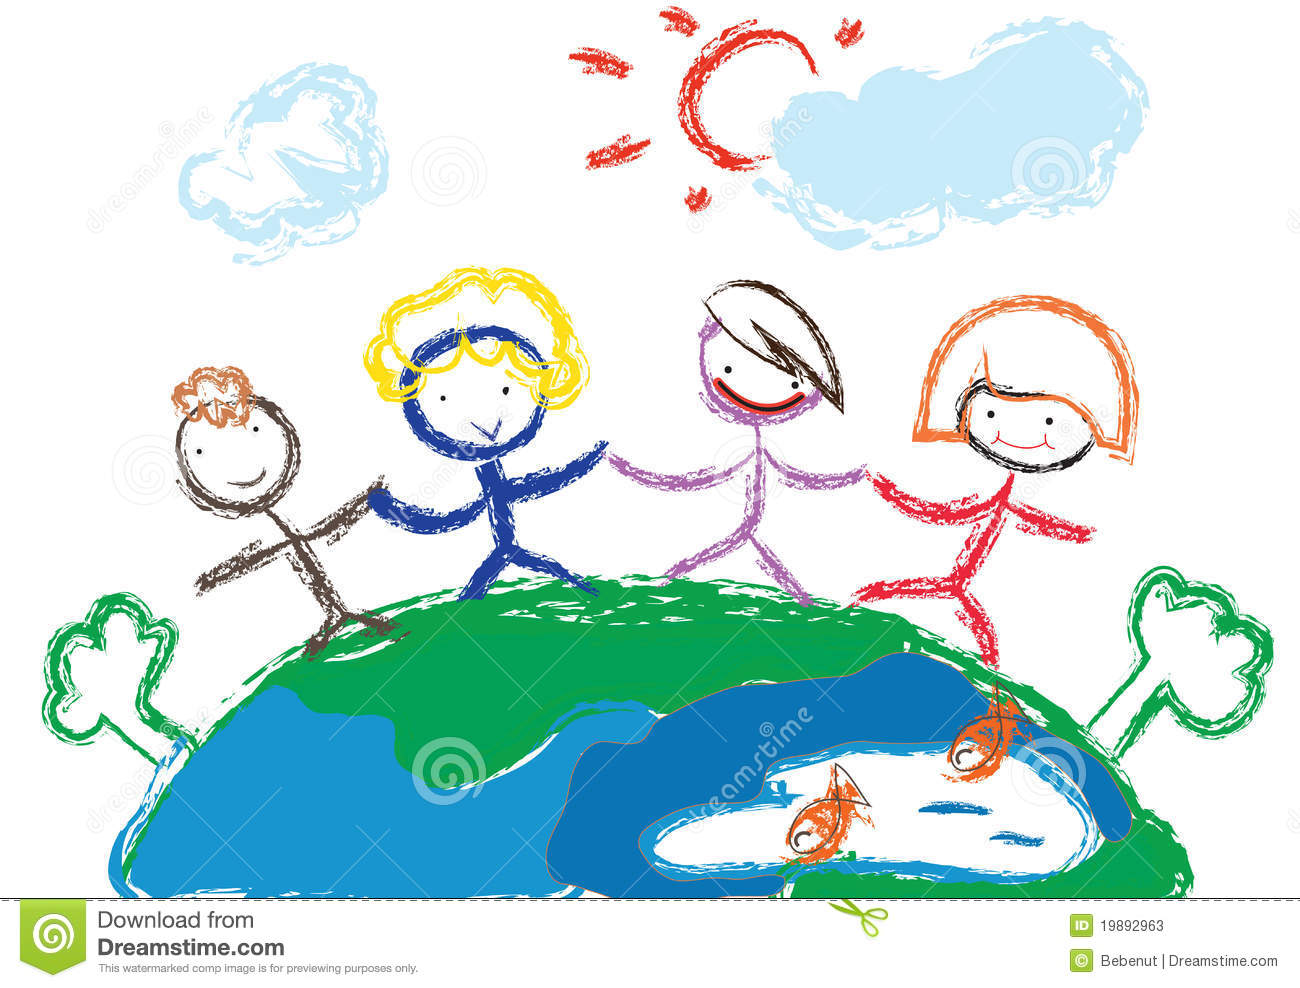 Painting Of Eartg With Children Holding Hands